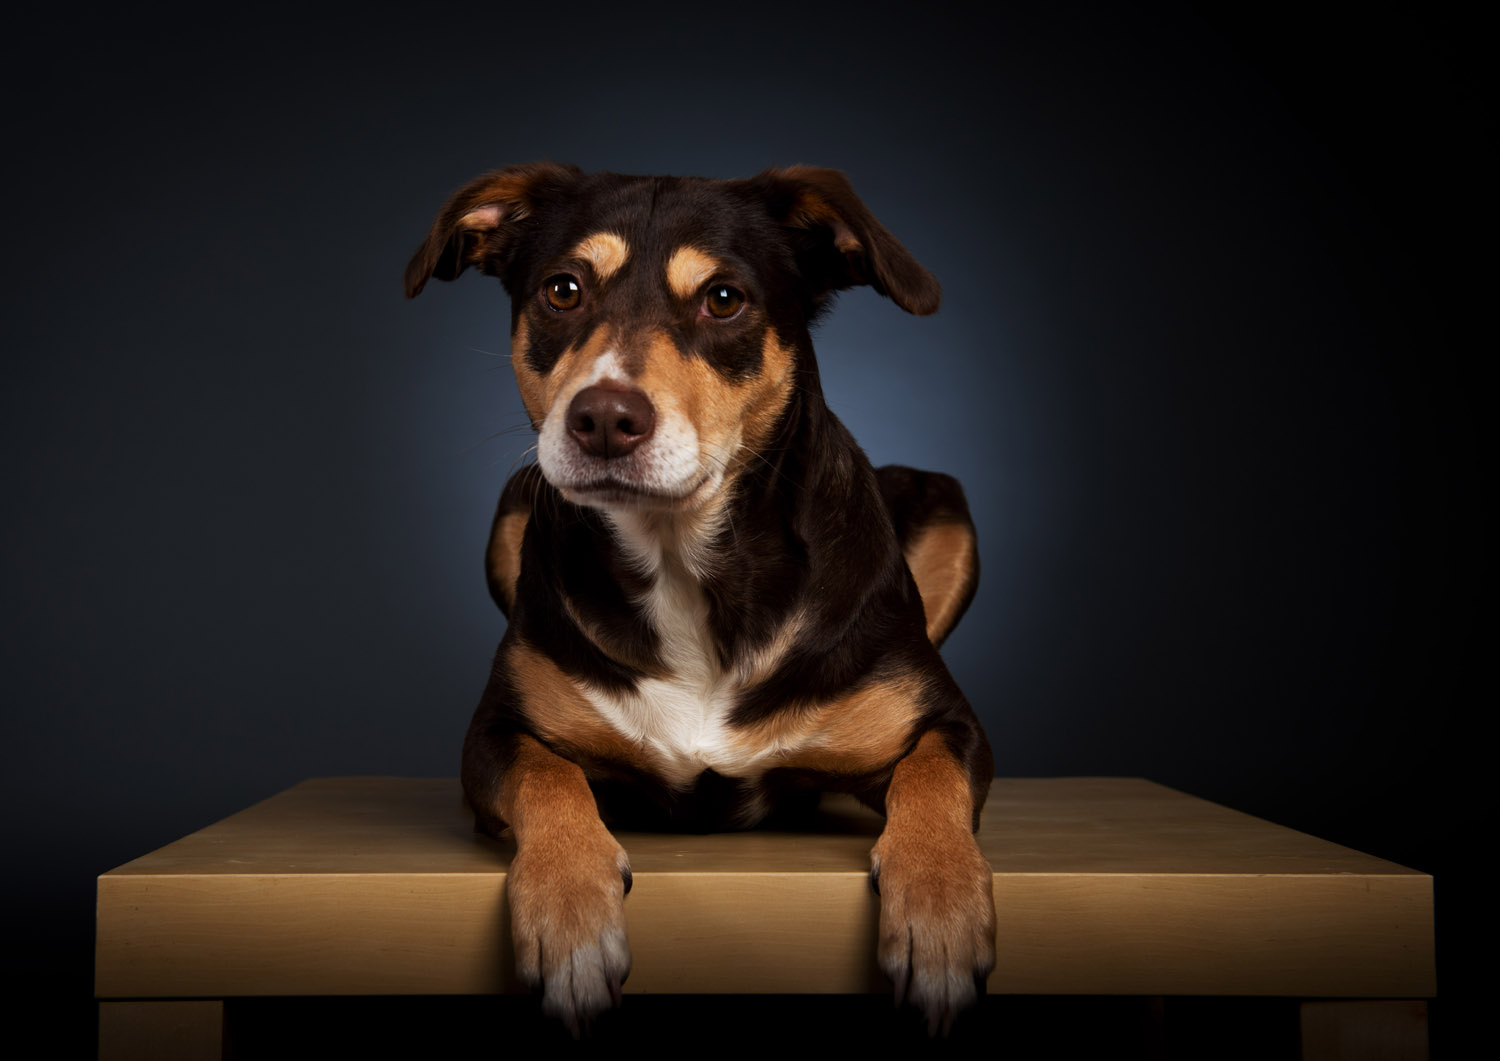 Pet Portrait Photography Day 25th of November 2015